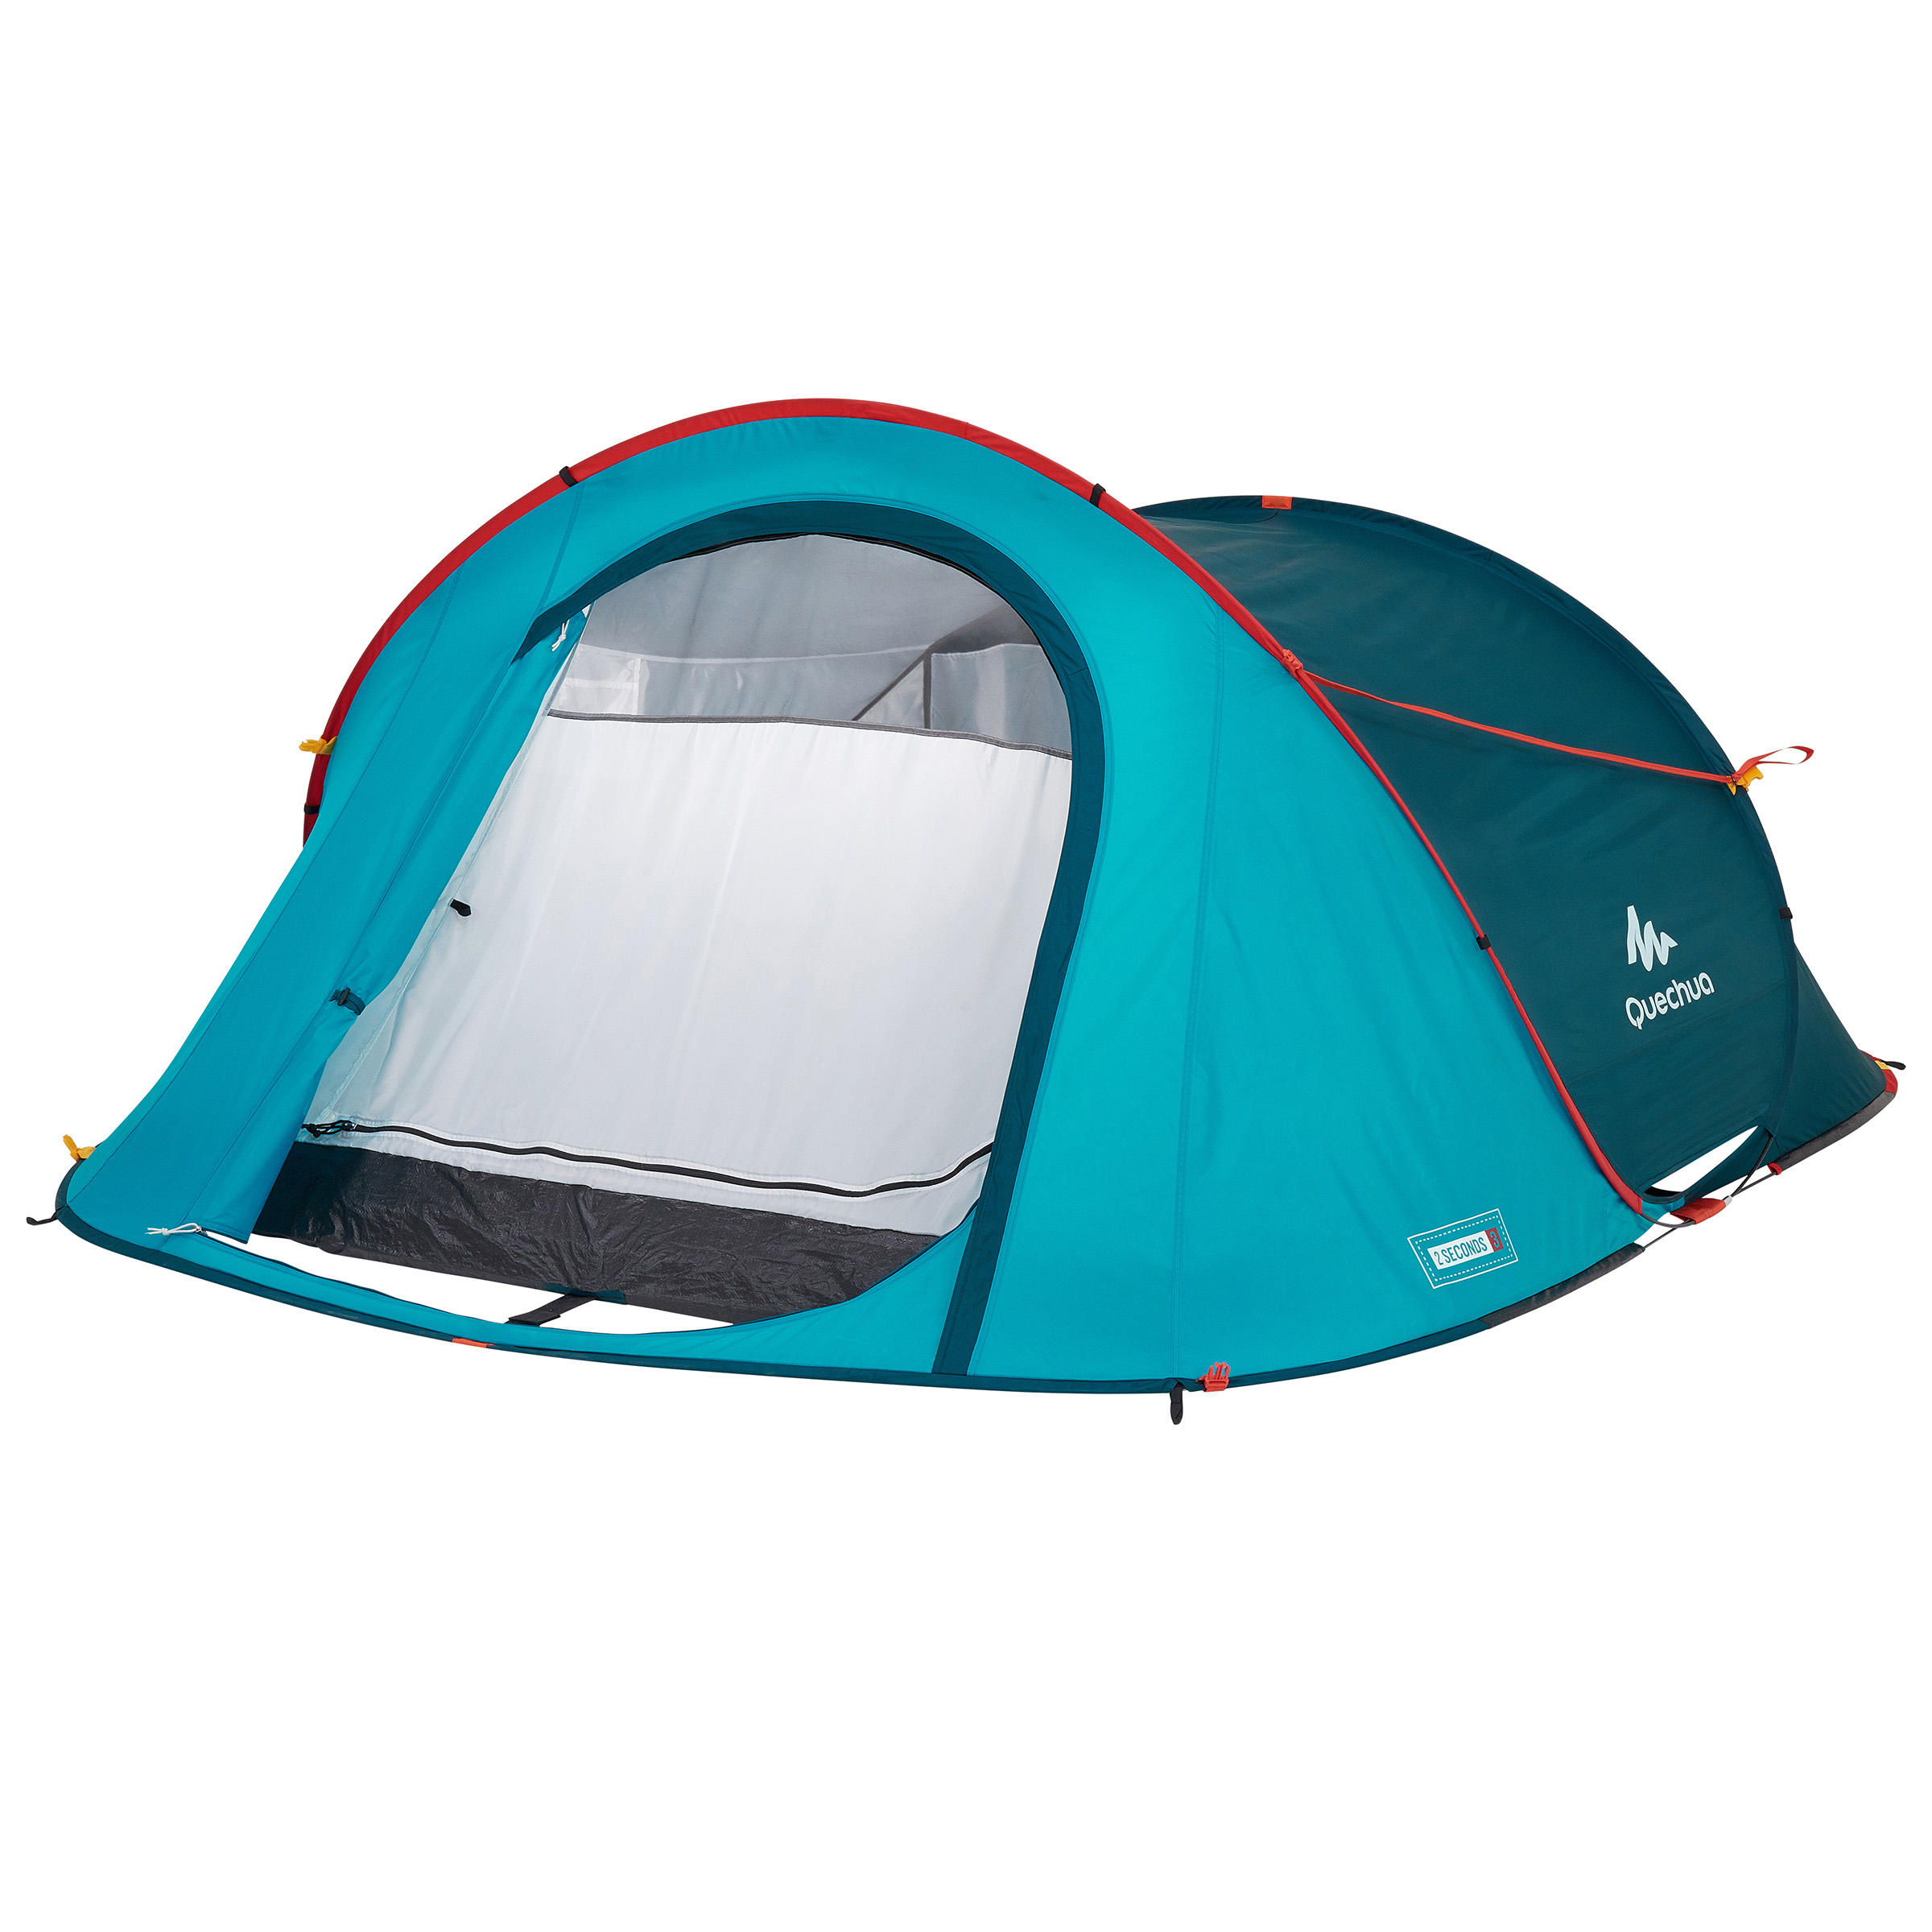 2 SECONDS camping tent _PIPE_ 3 person blue